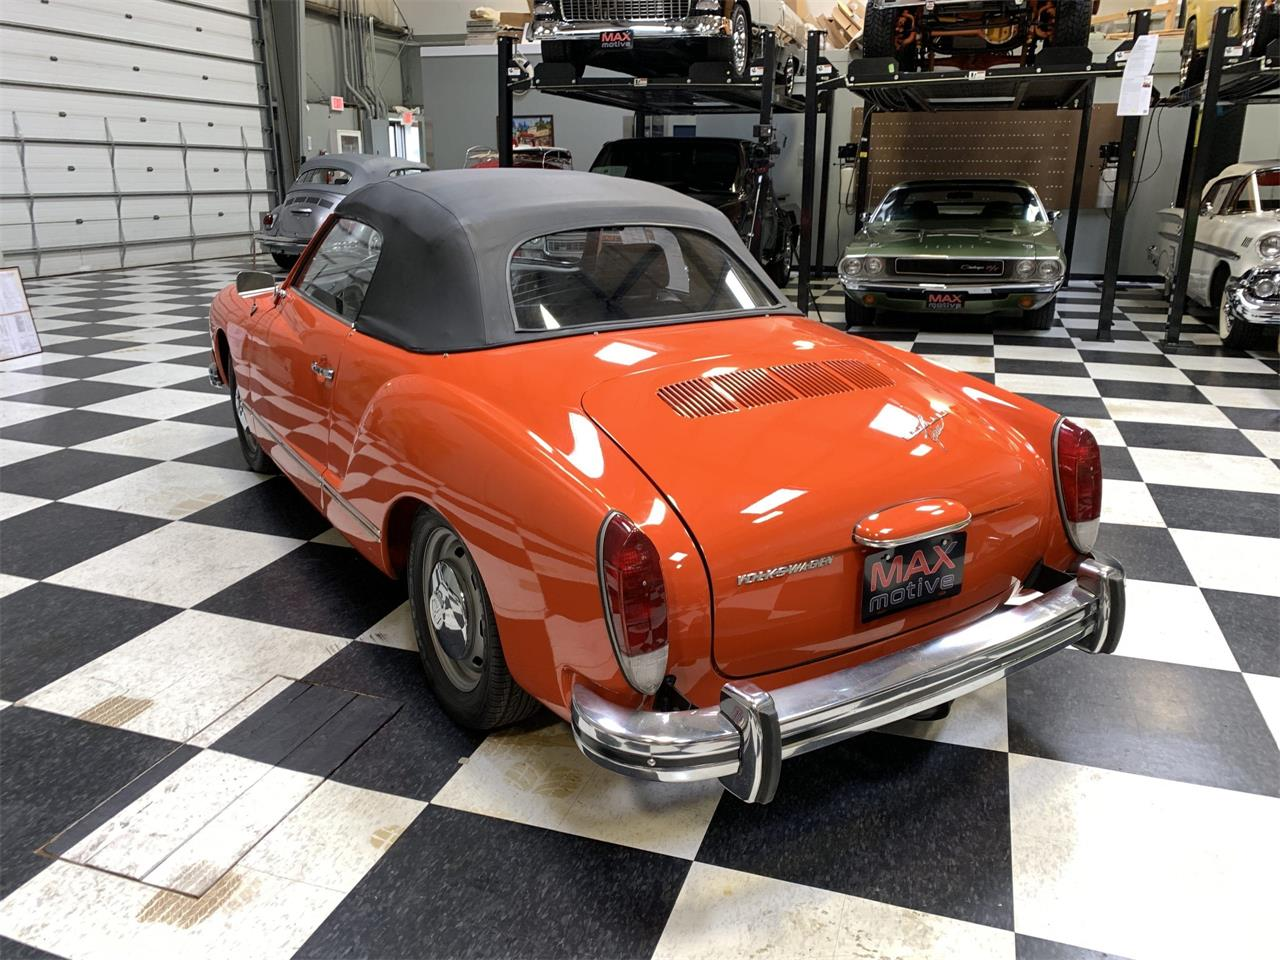 1974 Volkswagen Karmann Ghia for sale in Pittsburgh, PA – photo 5